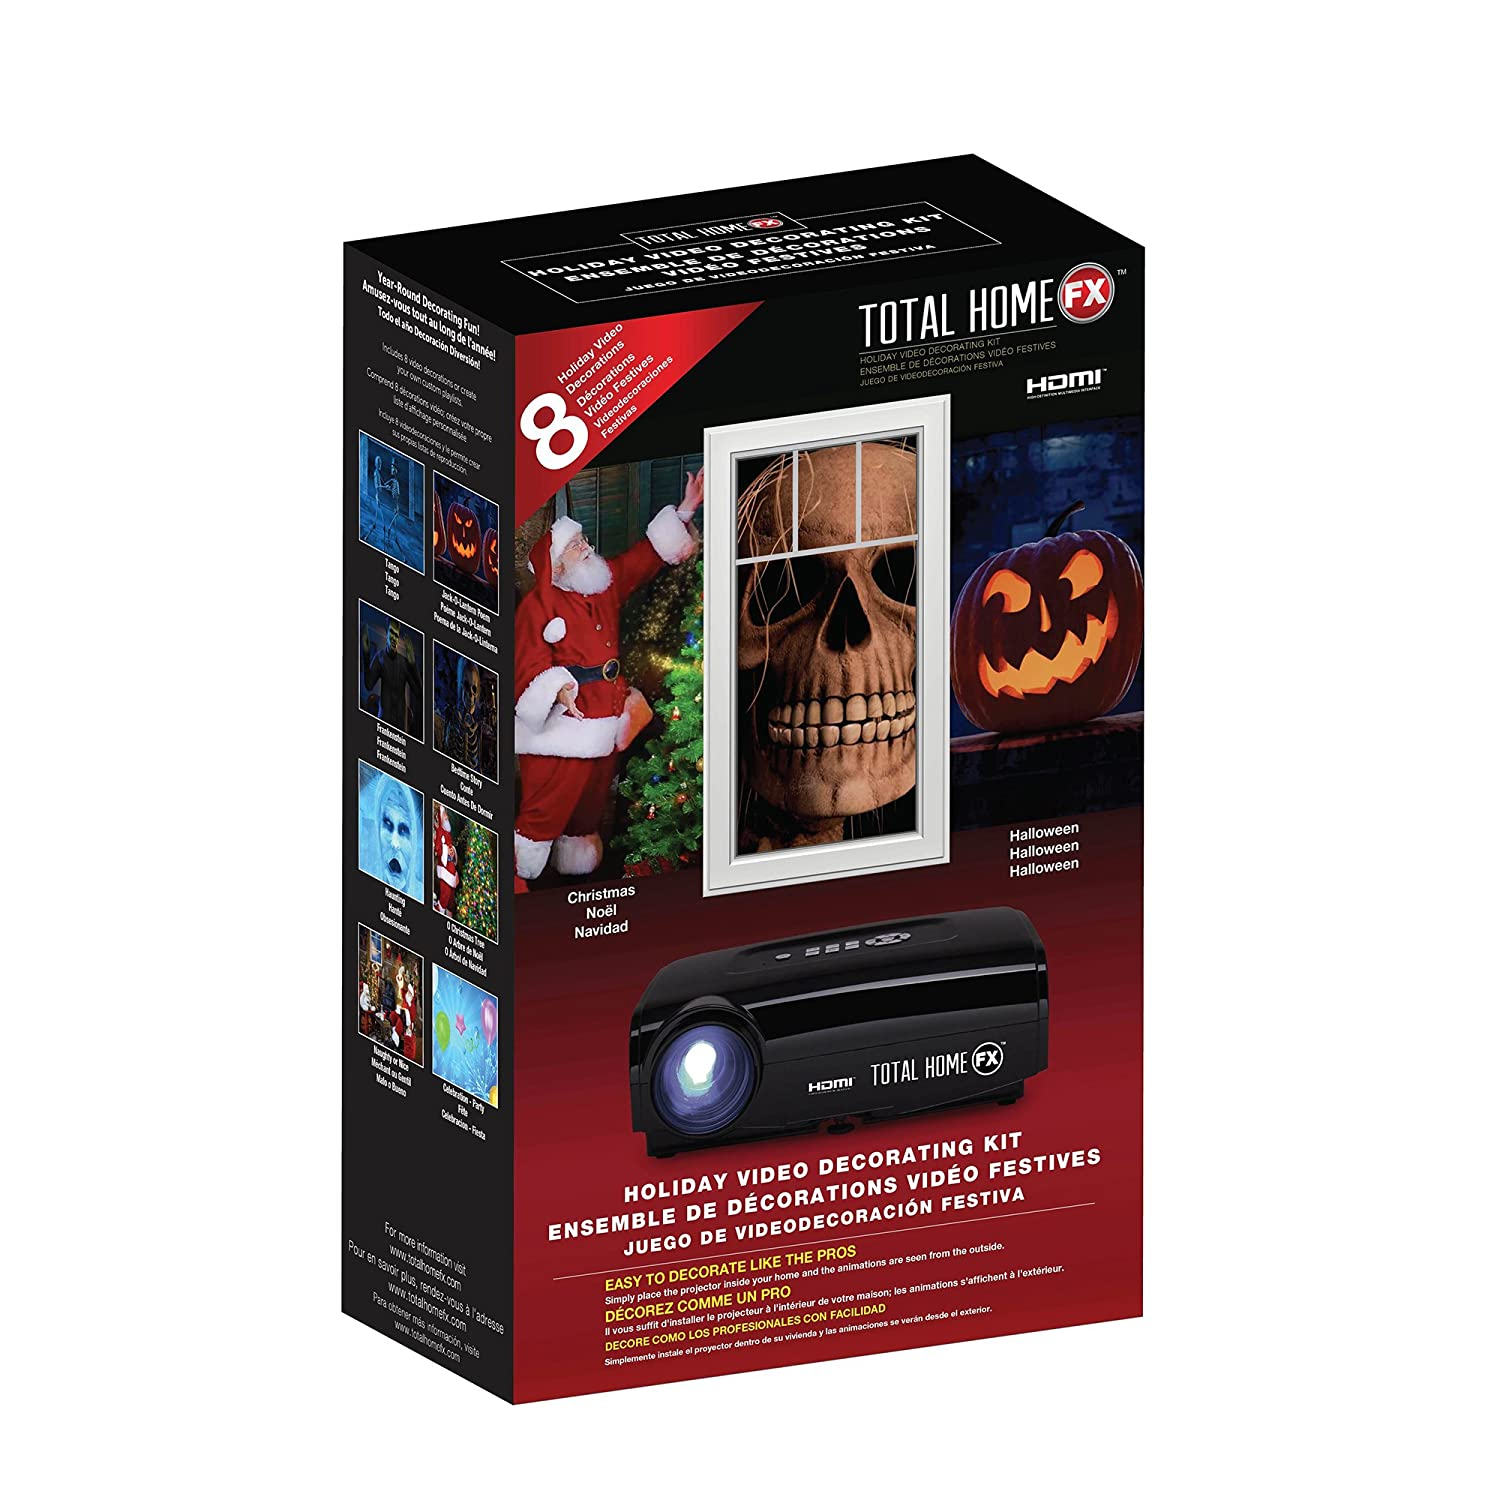 amazoncom total homefx plus digital projector decorating kit hdmi capable garden outdoor